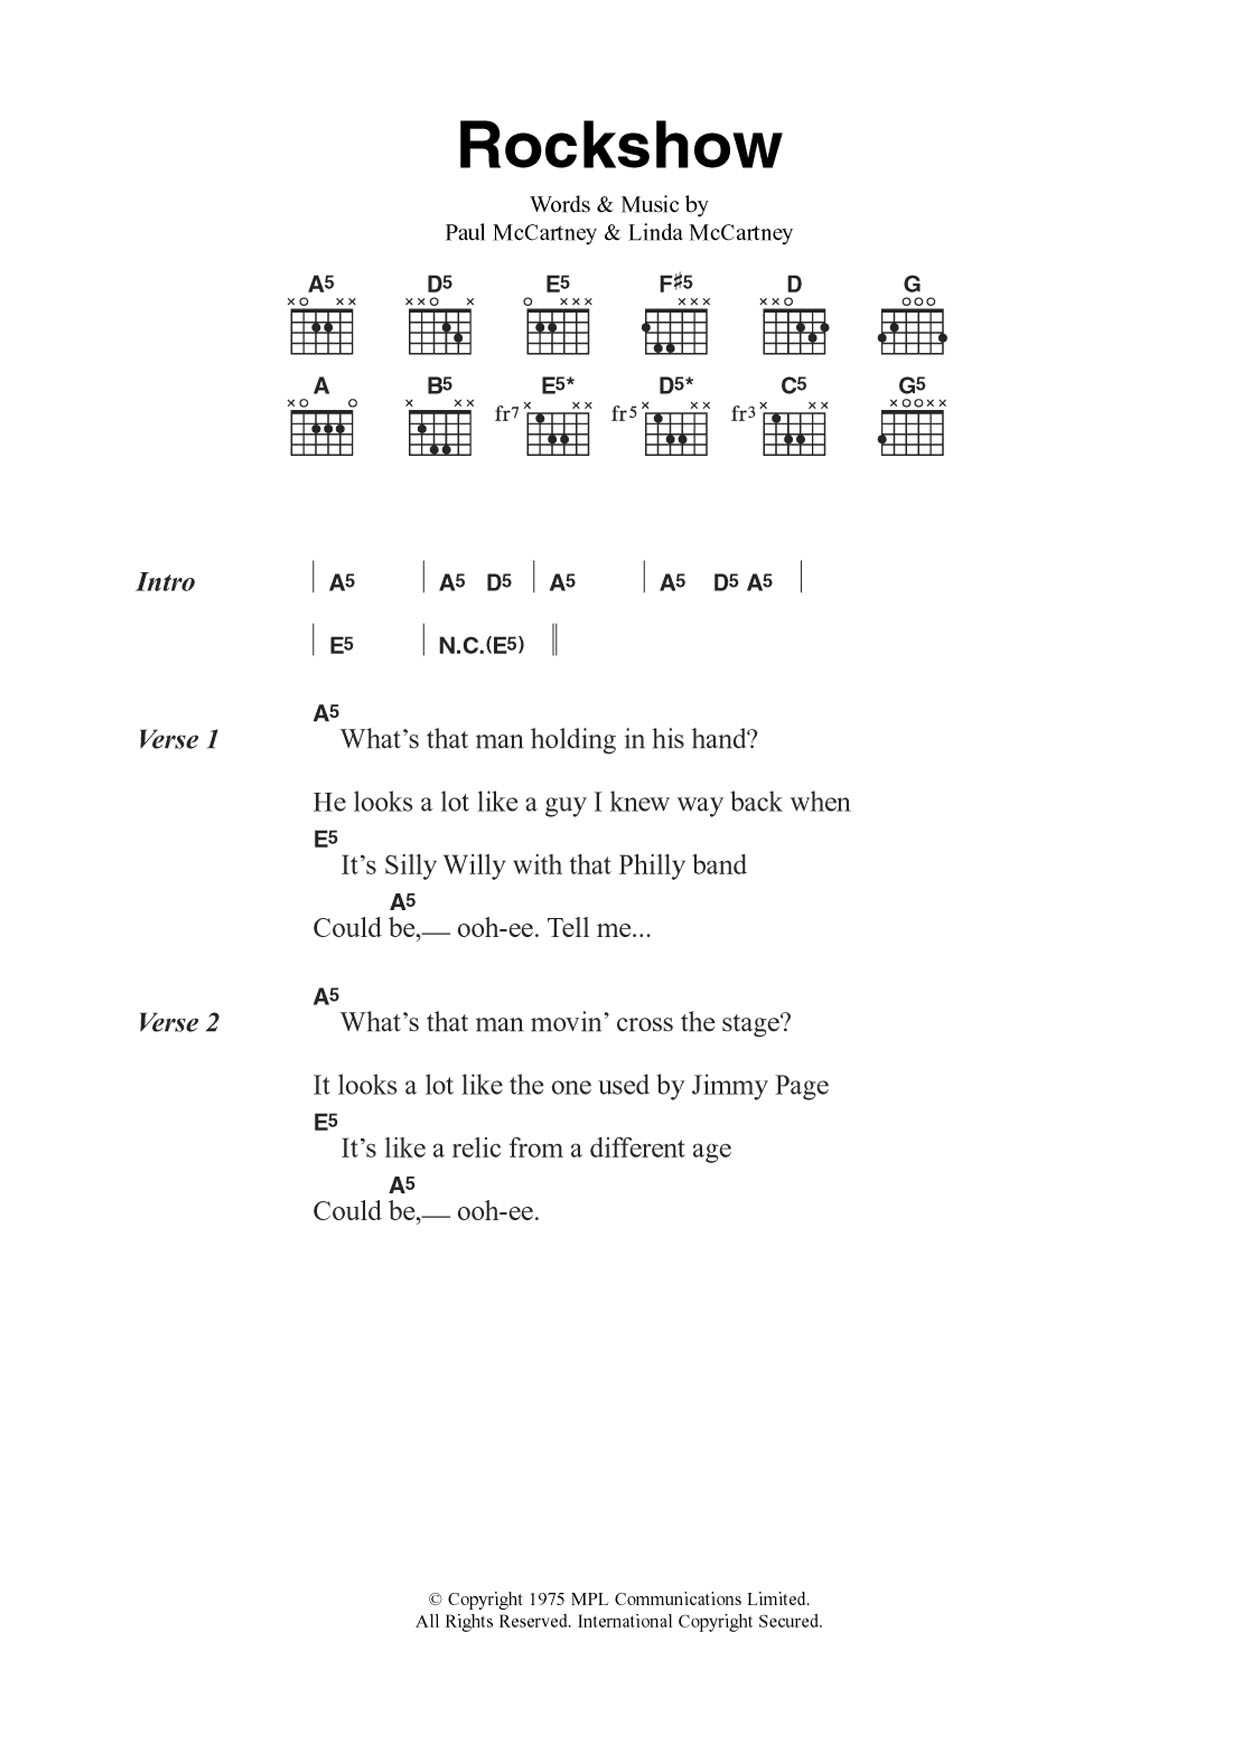 Rockshow Sheet Music